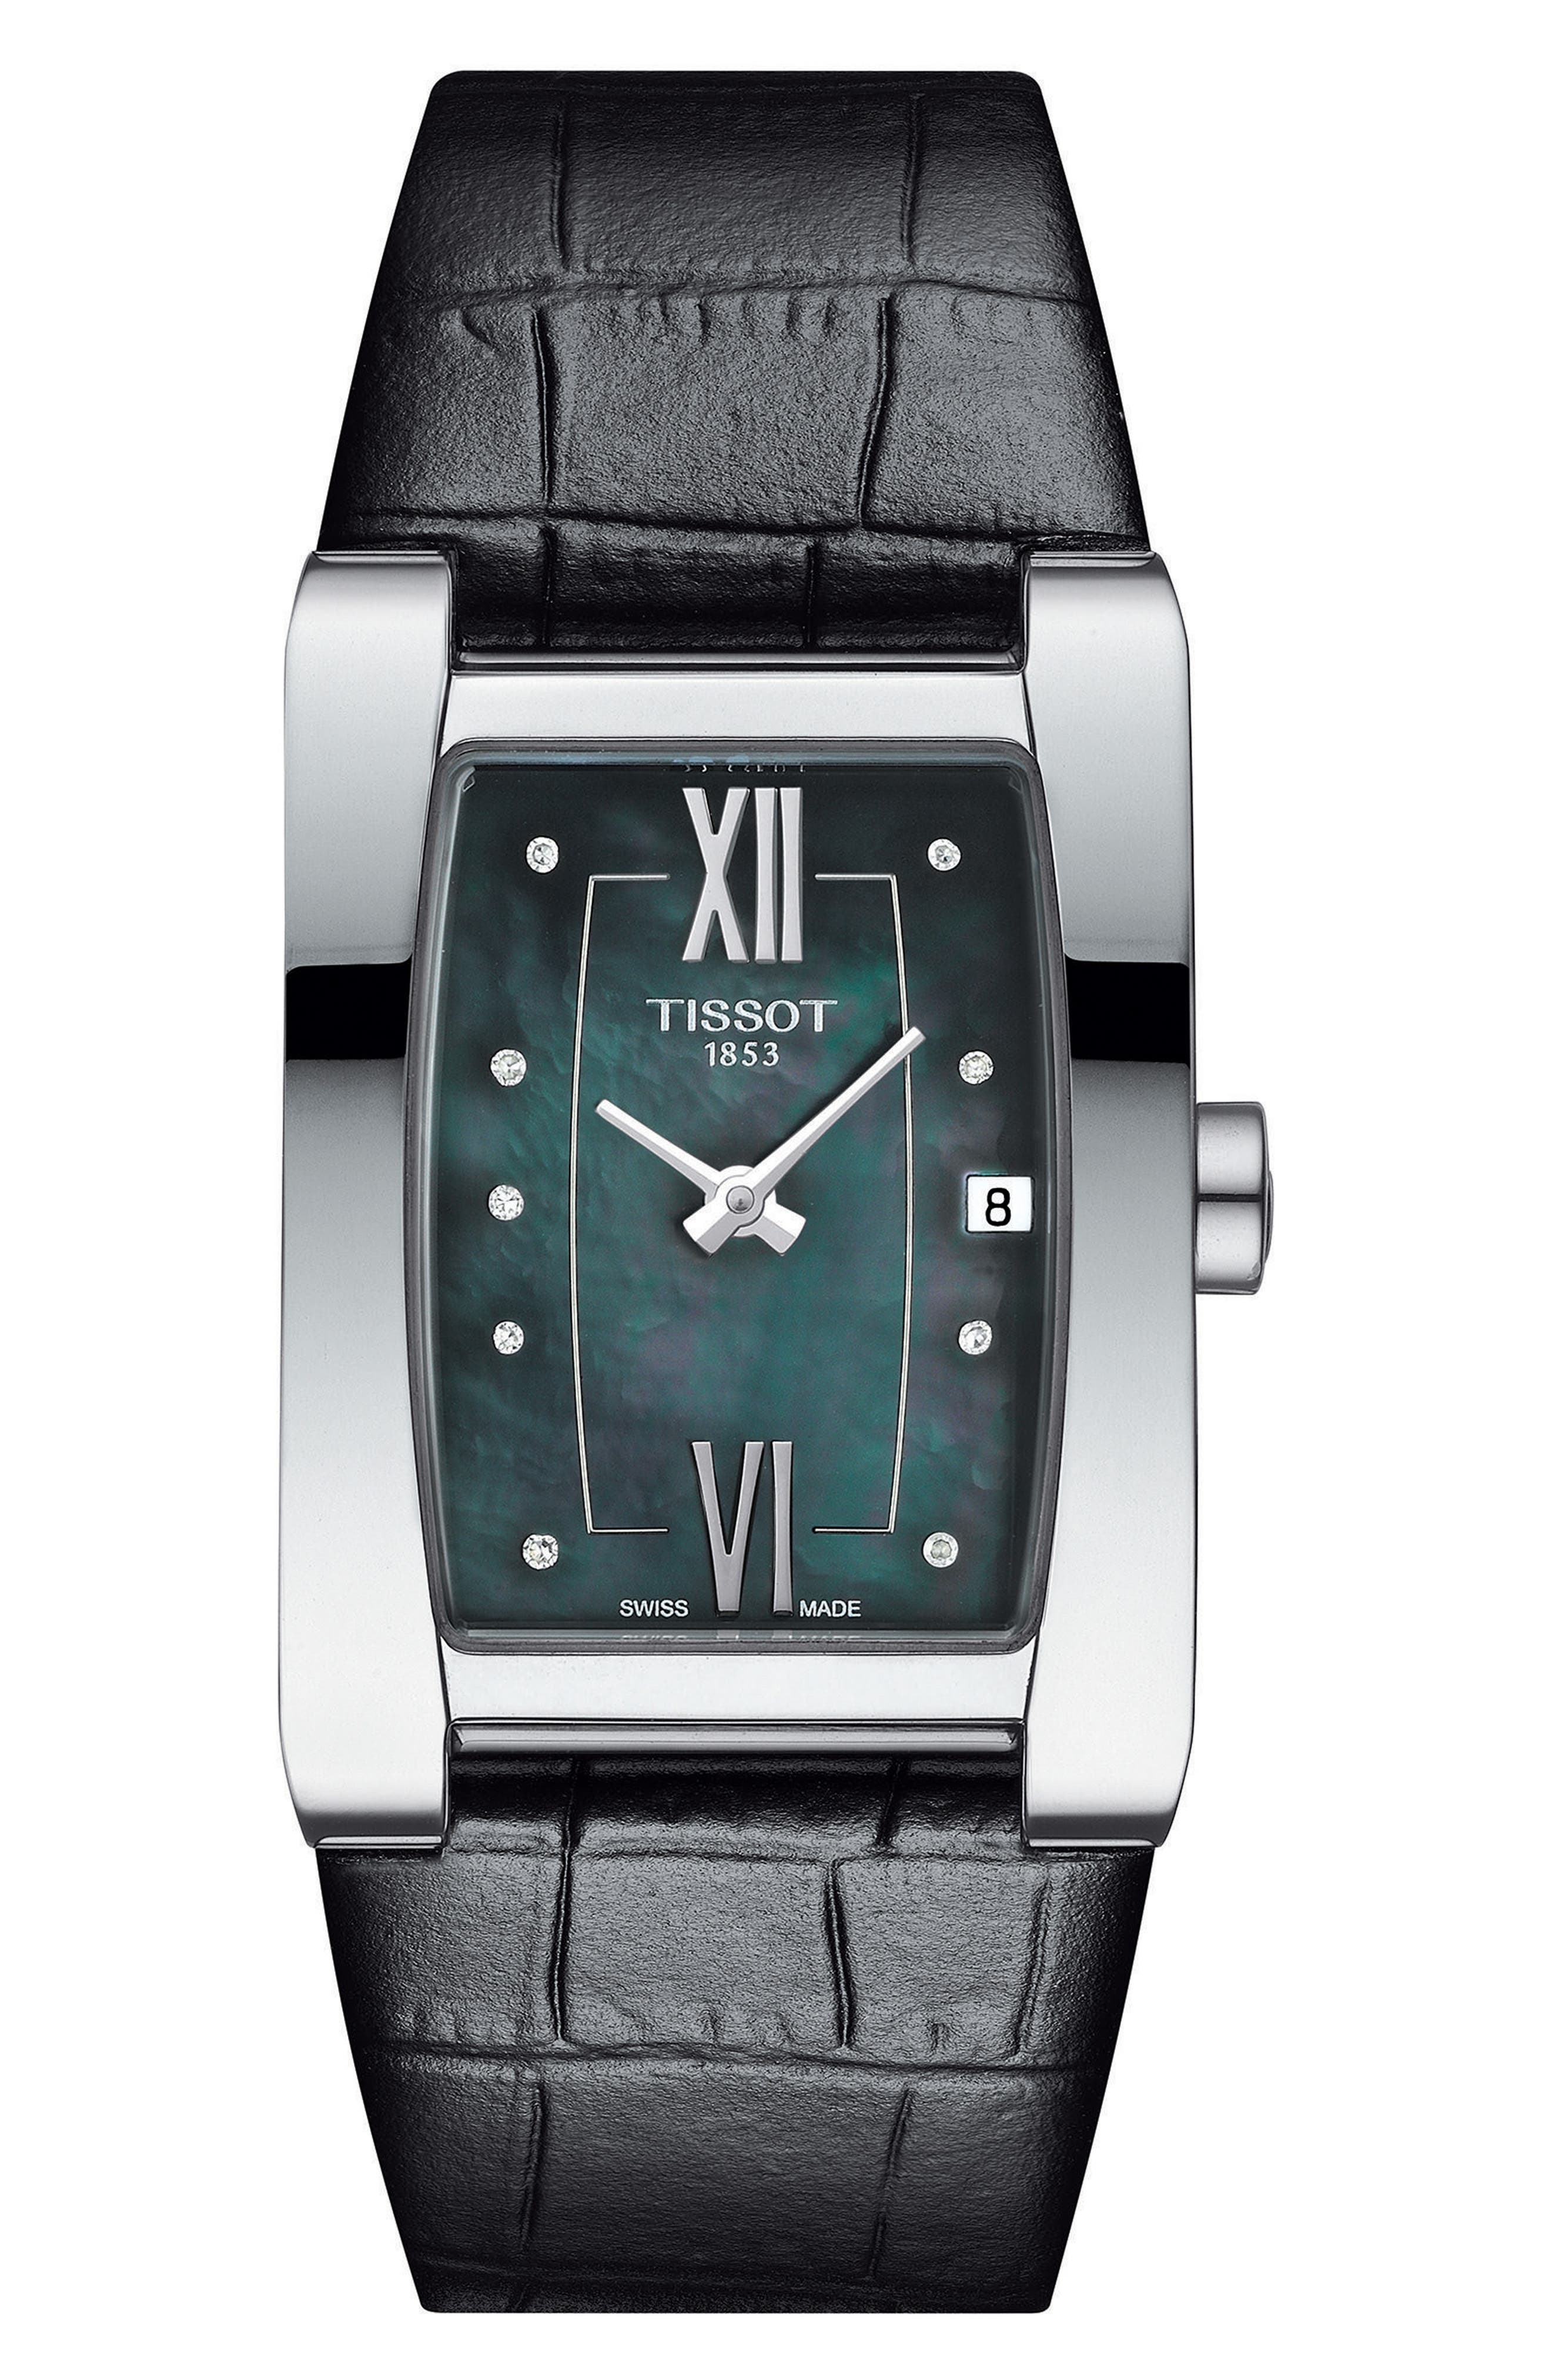 TISSOT Generosi-T Rectangular Leather Strap Watch, 27mm x 24mm